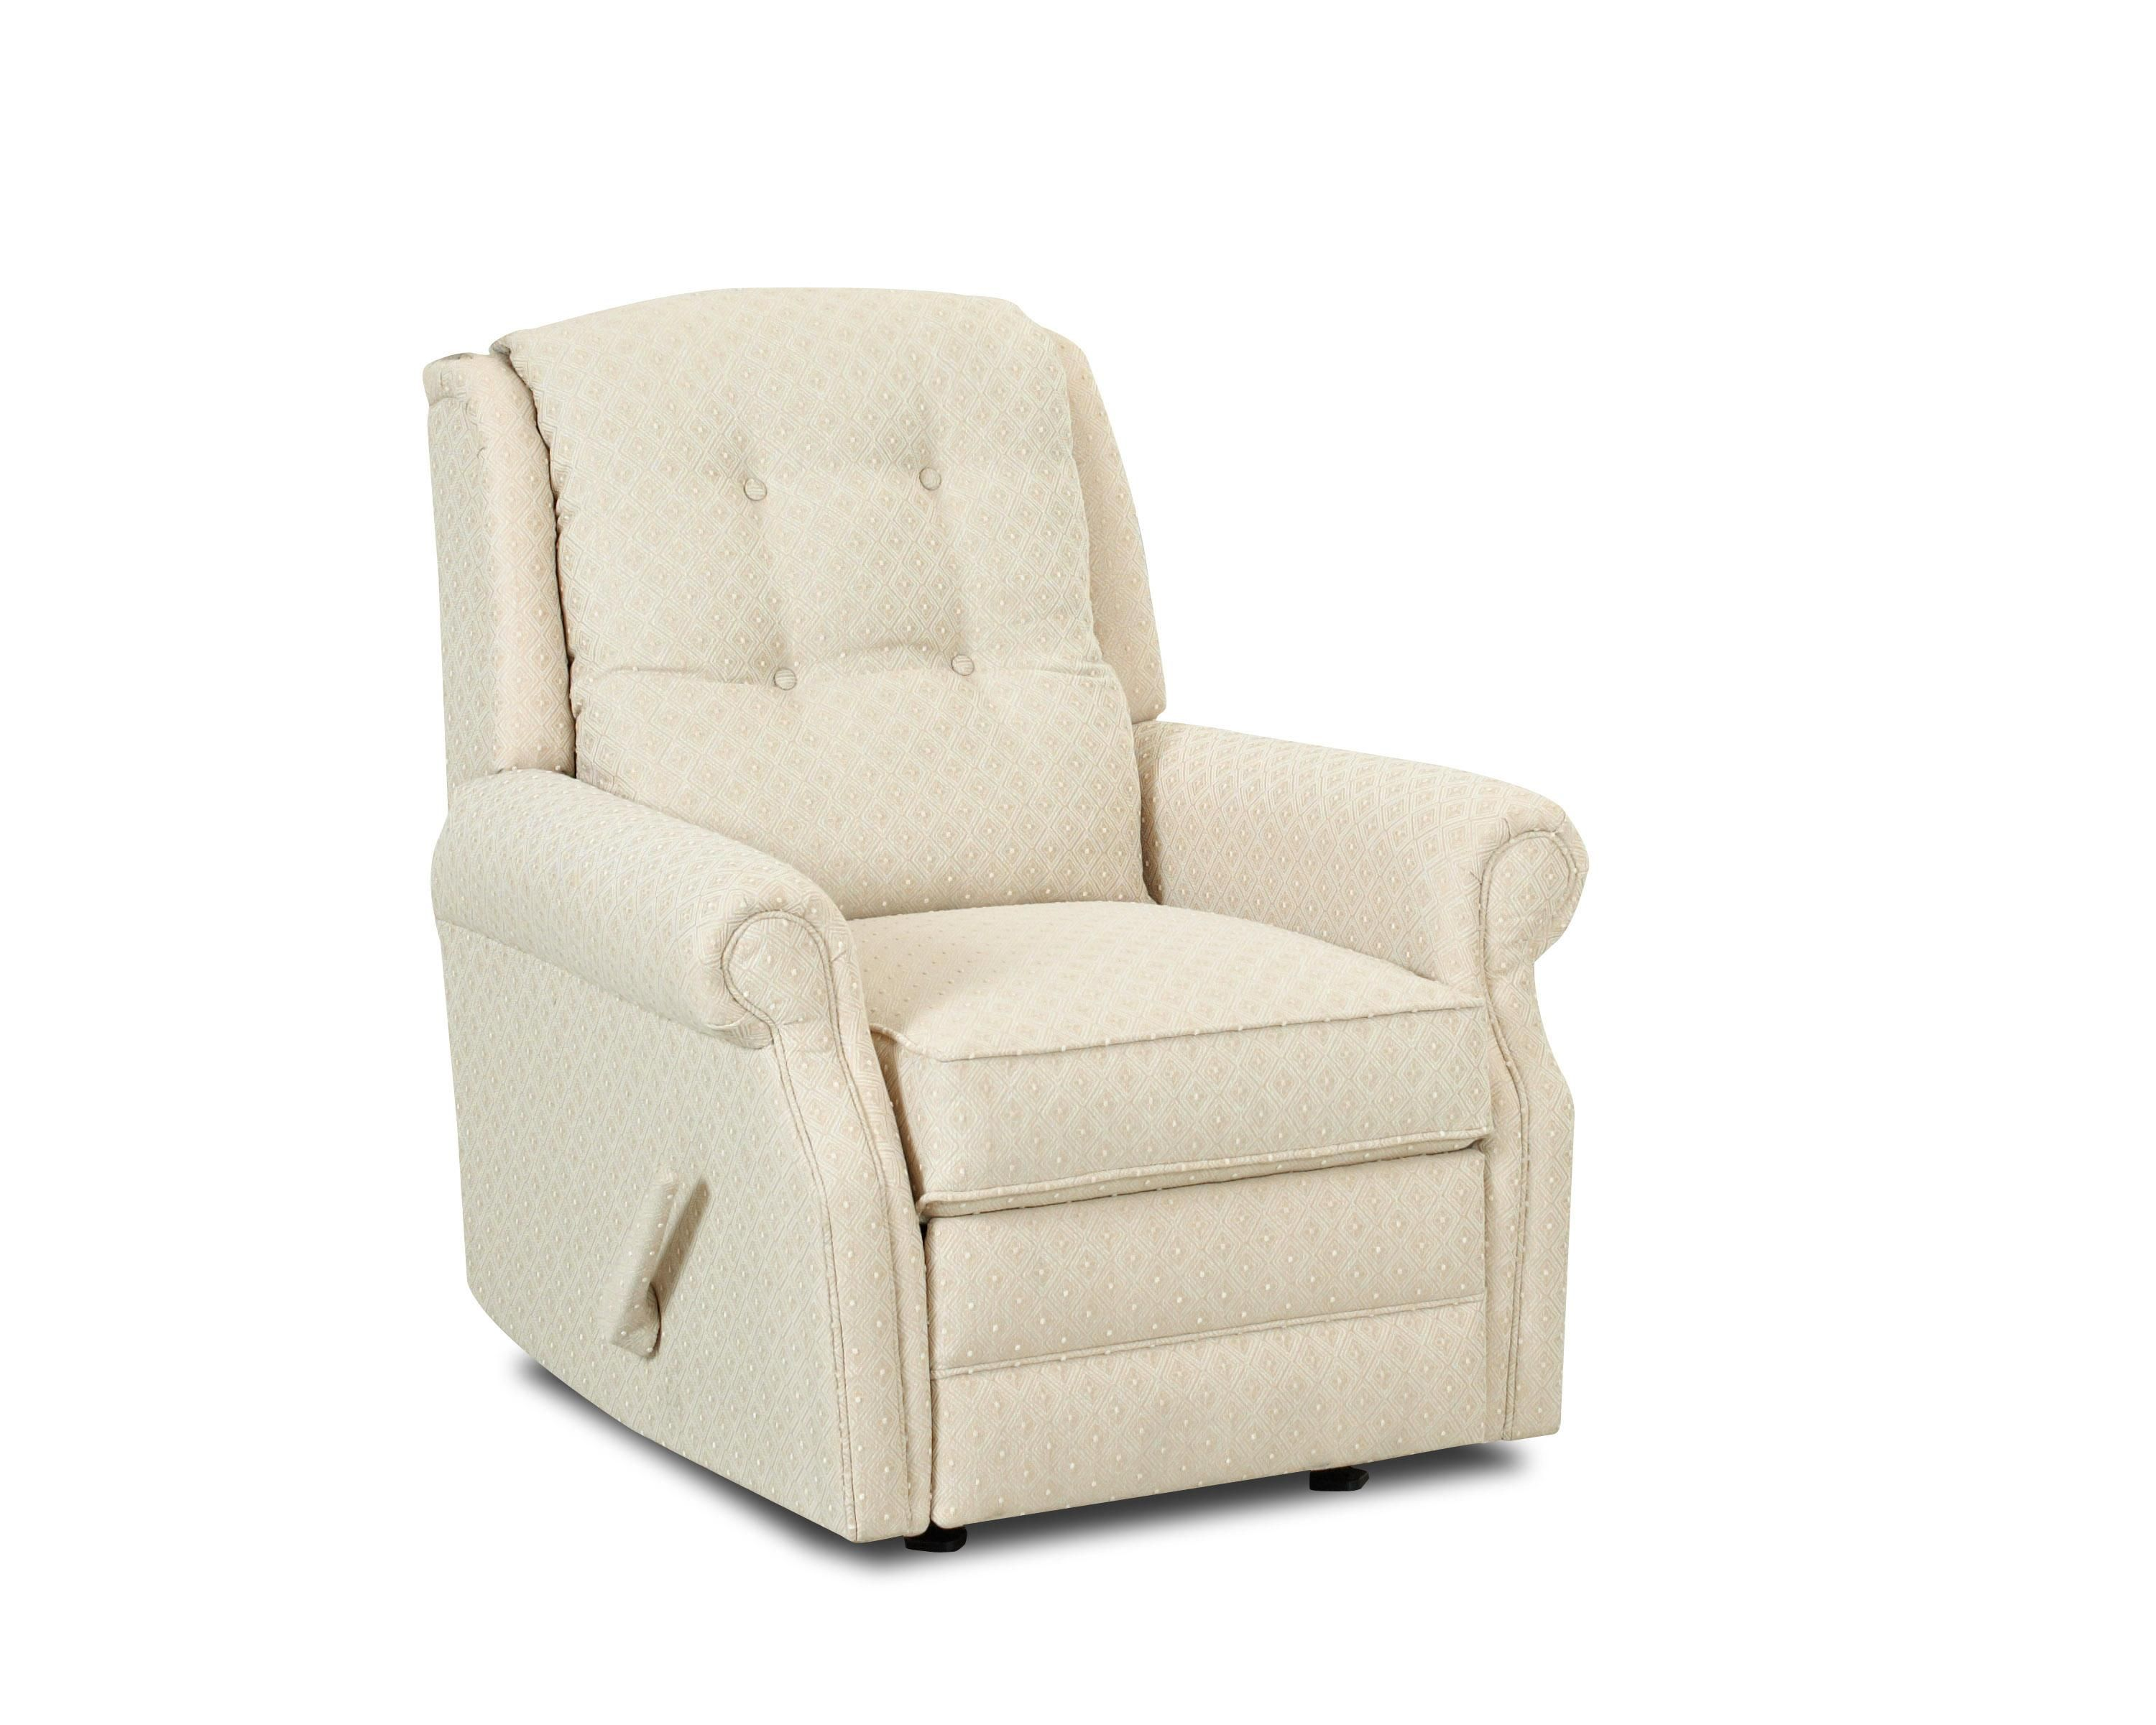 Transitional Manual Gliding Reclining Chair with Button Tufting ...